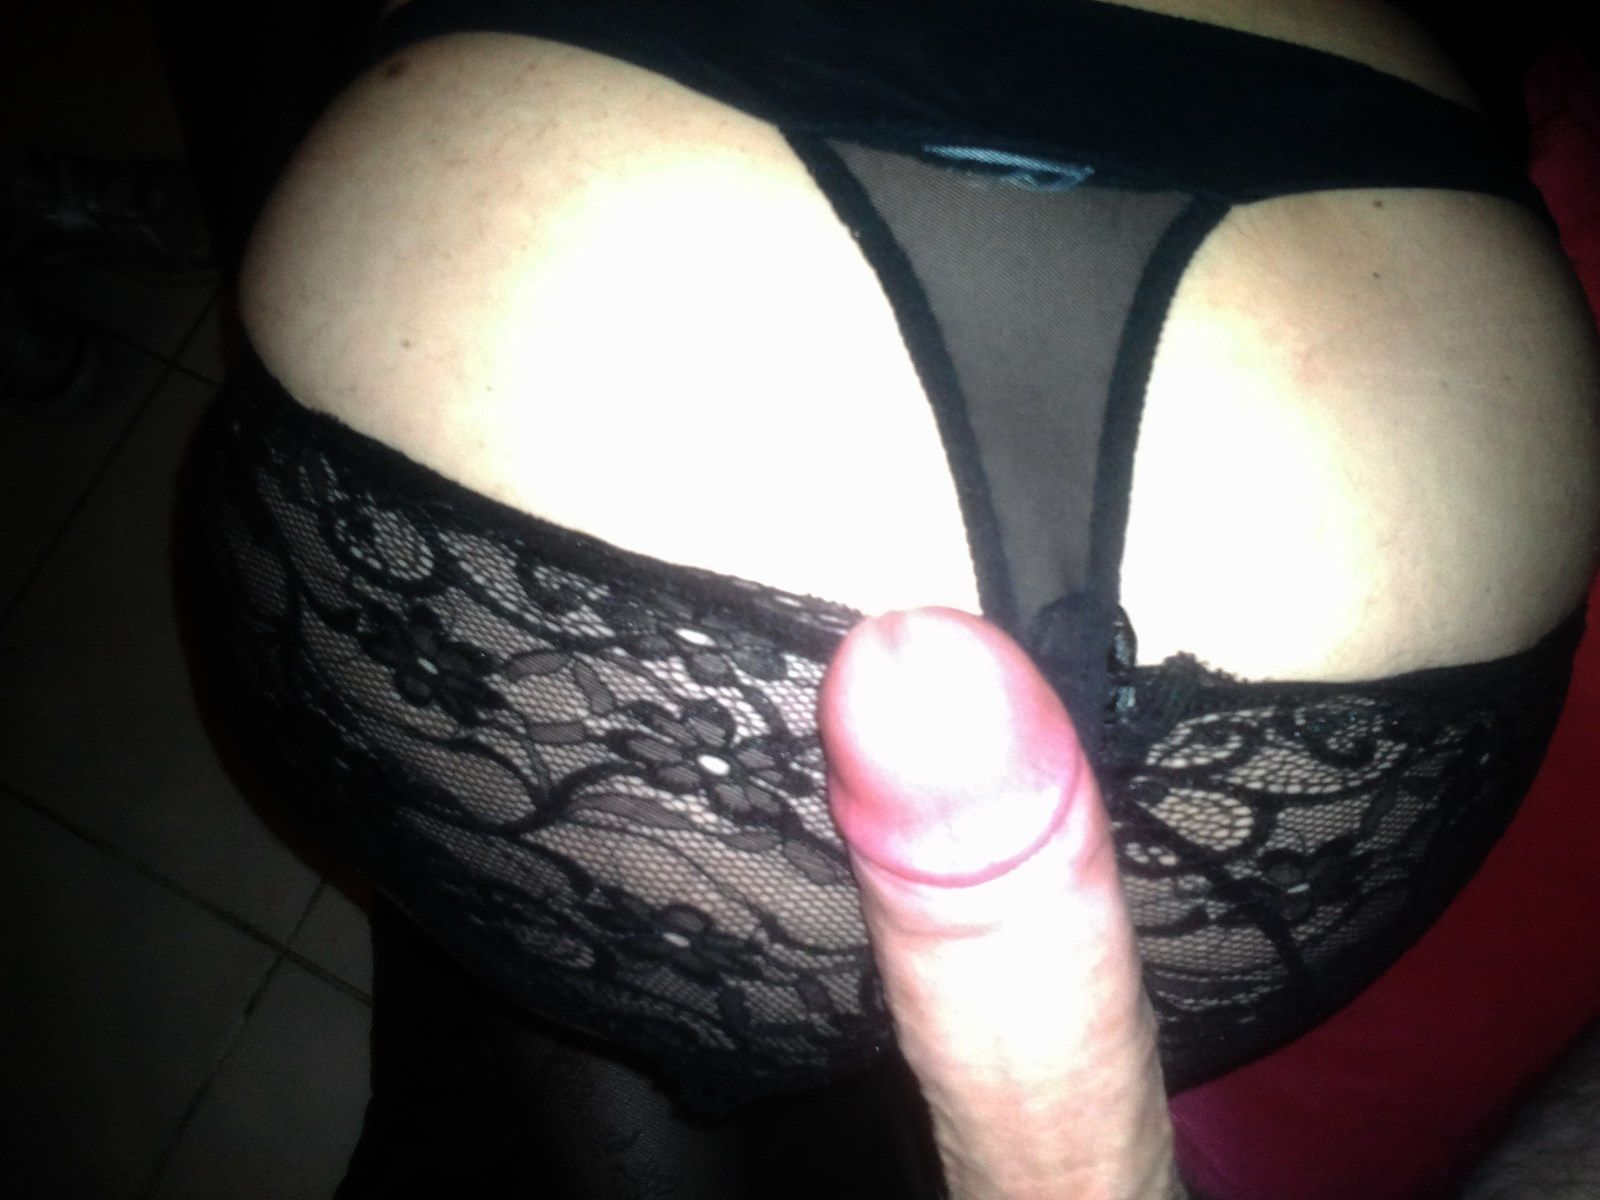 SANDRA SISSY A TOURNER SUR TOULOUSE